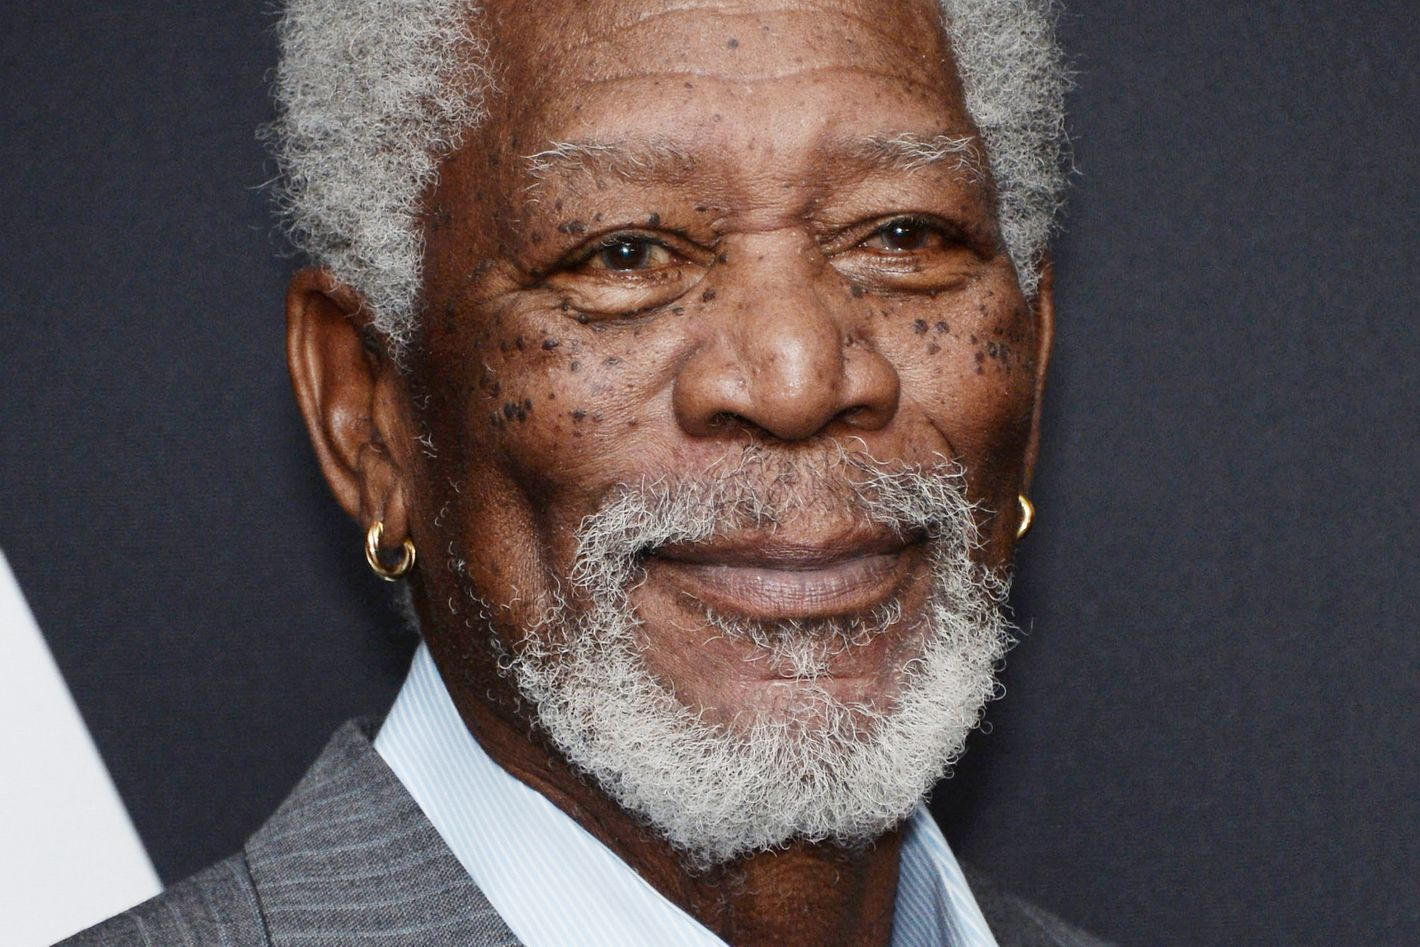 Morgan Freeman Omg I Love Weed So Much It S Delicious And Makes Me Feel Funny And Super Chill